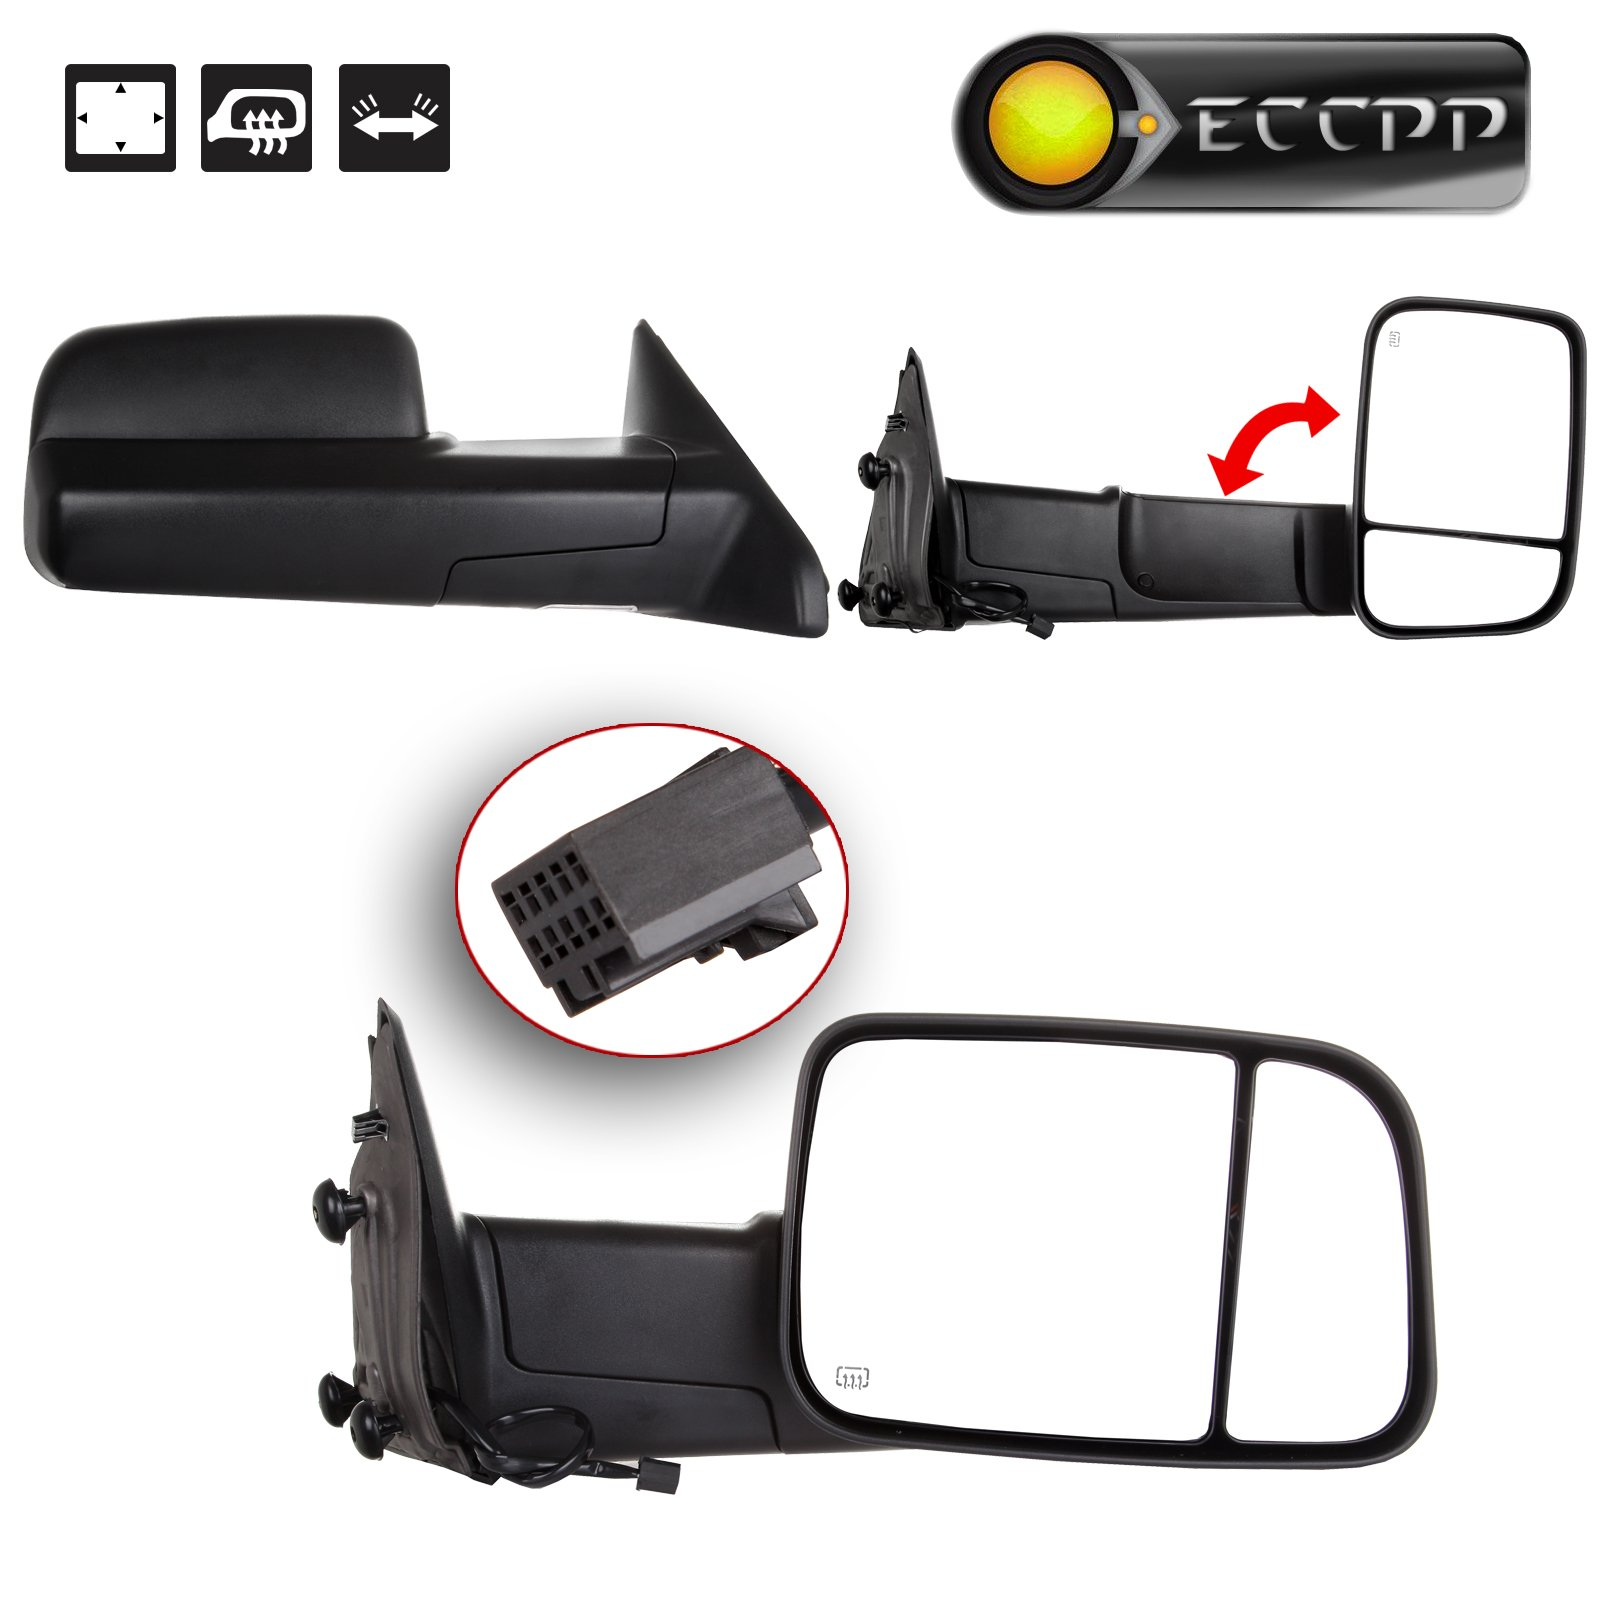 ECCPP Towing Mirrors for 2009-15 Ram 1500 Pickup Side View Power Heated Towing Manual Flip Up Black Mirrors